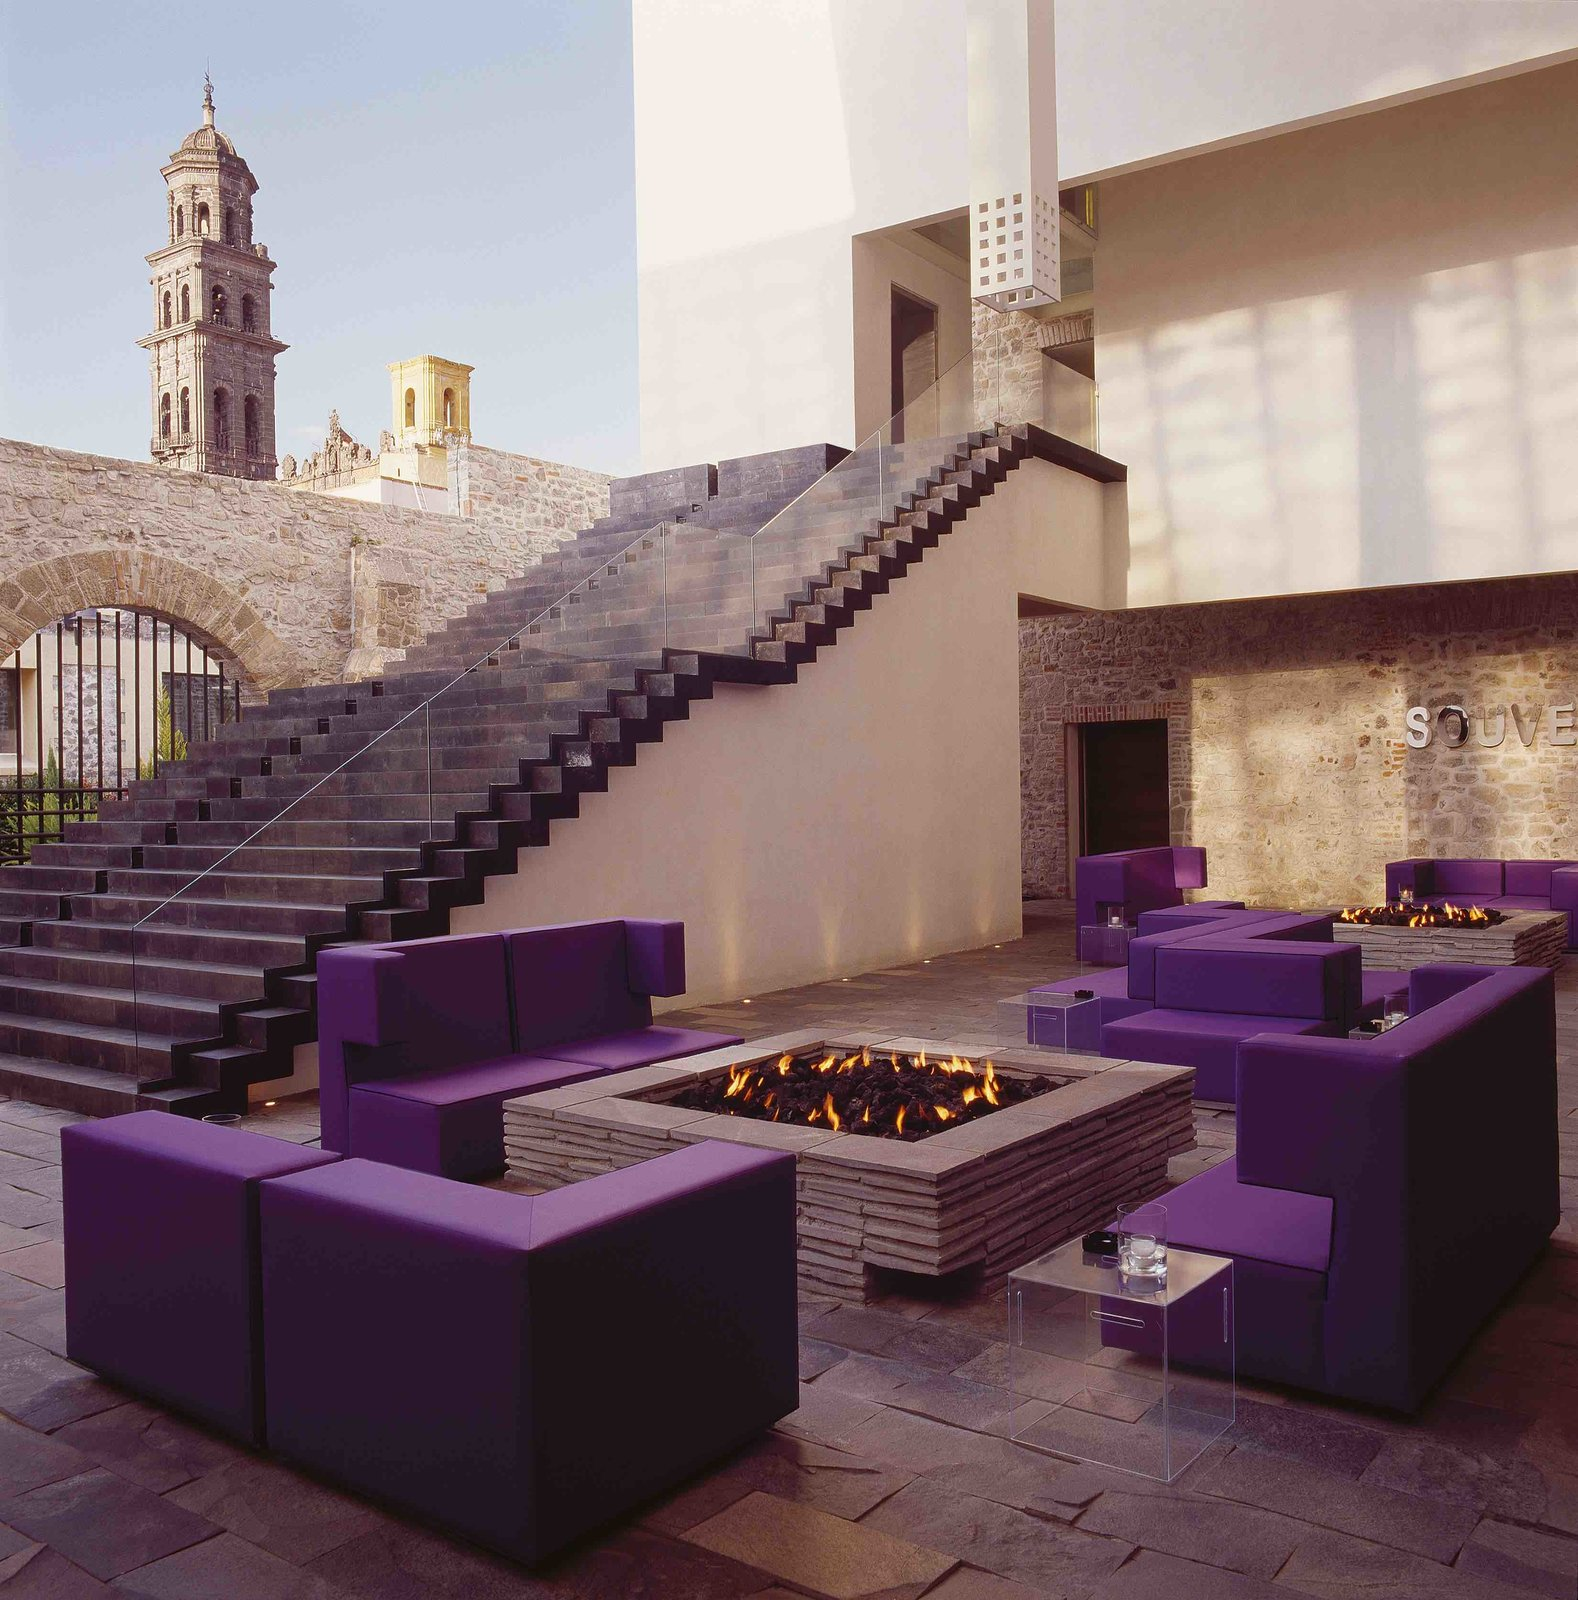 The interiors of La Purificadora in Puebla, Mexico  Photo 24 of 24 in 12 Modern Hotels in Historic Buildings Around the World